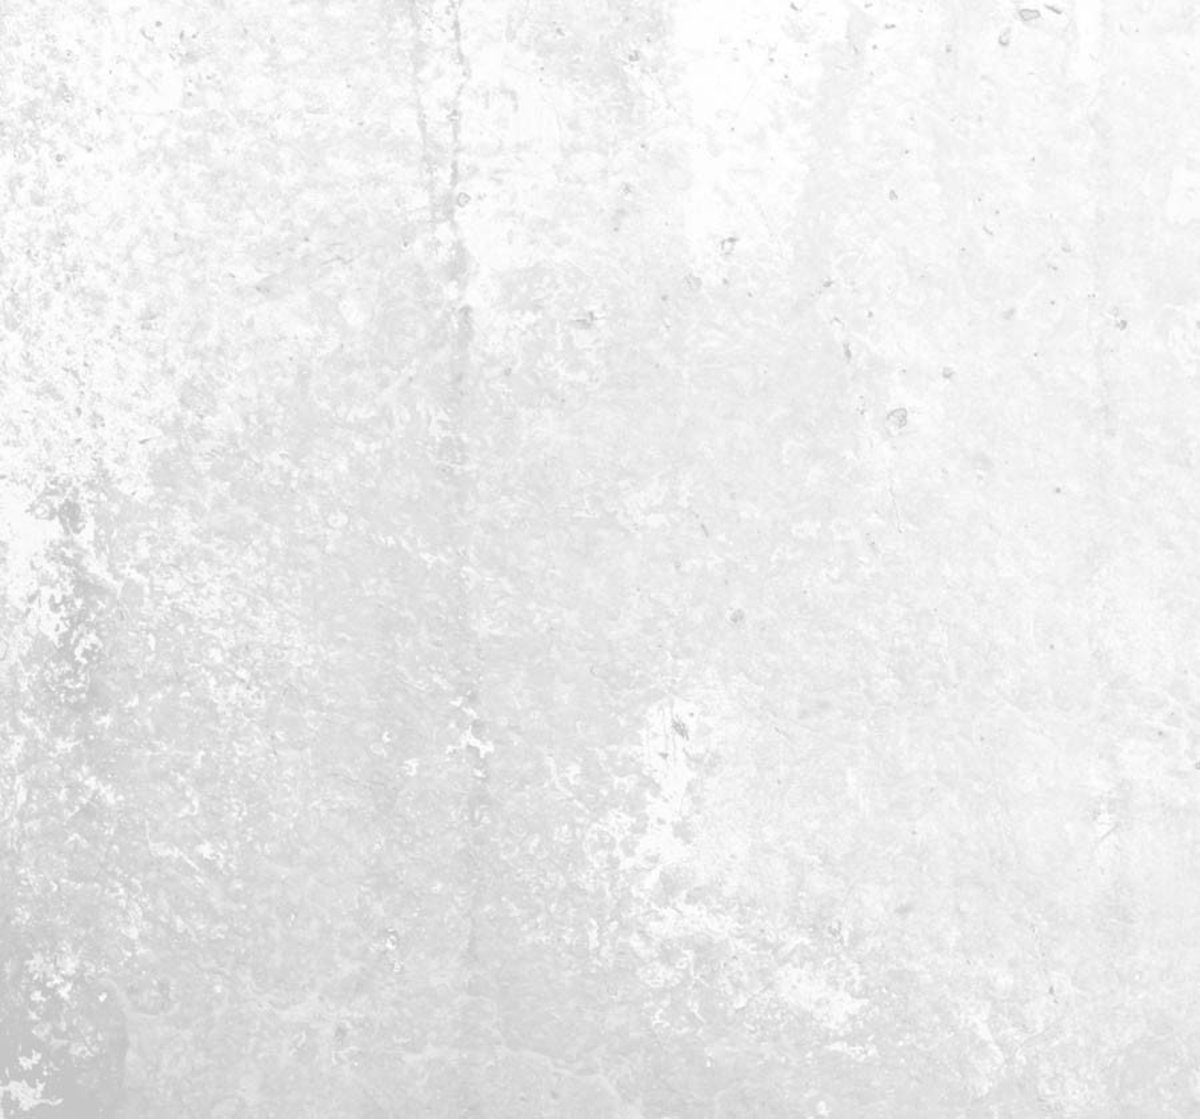 Distressed white cement or concrete wall texture background